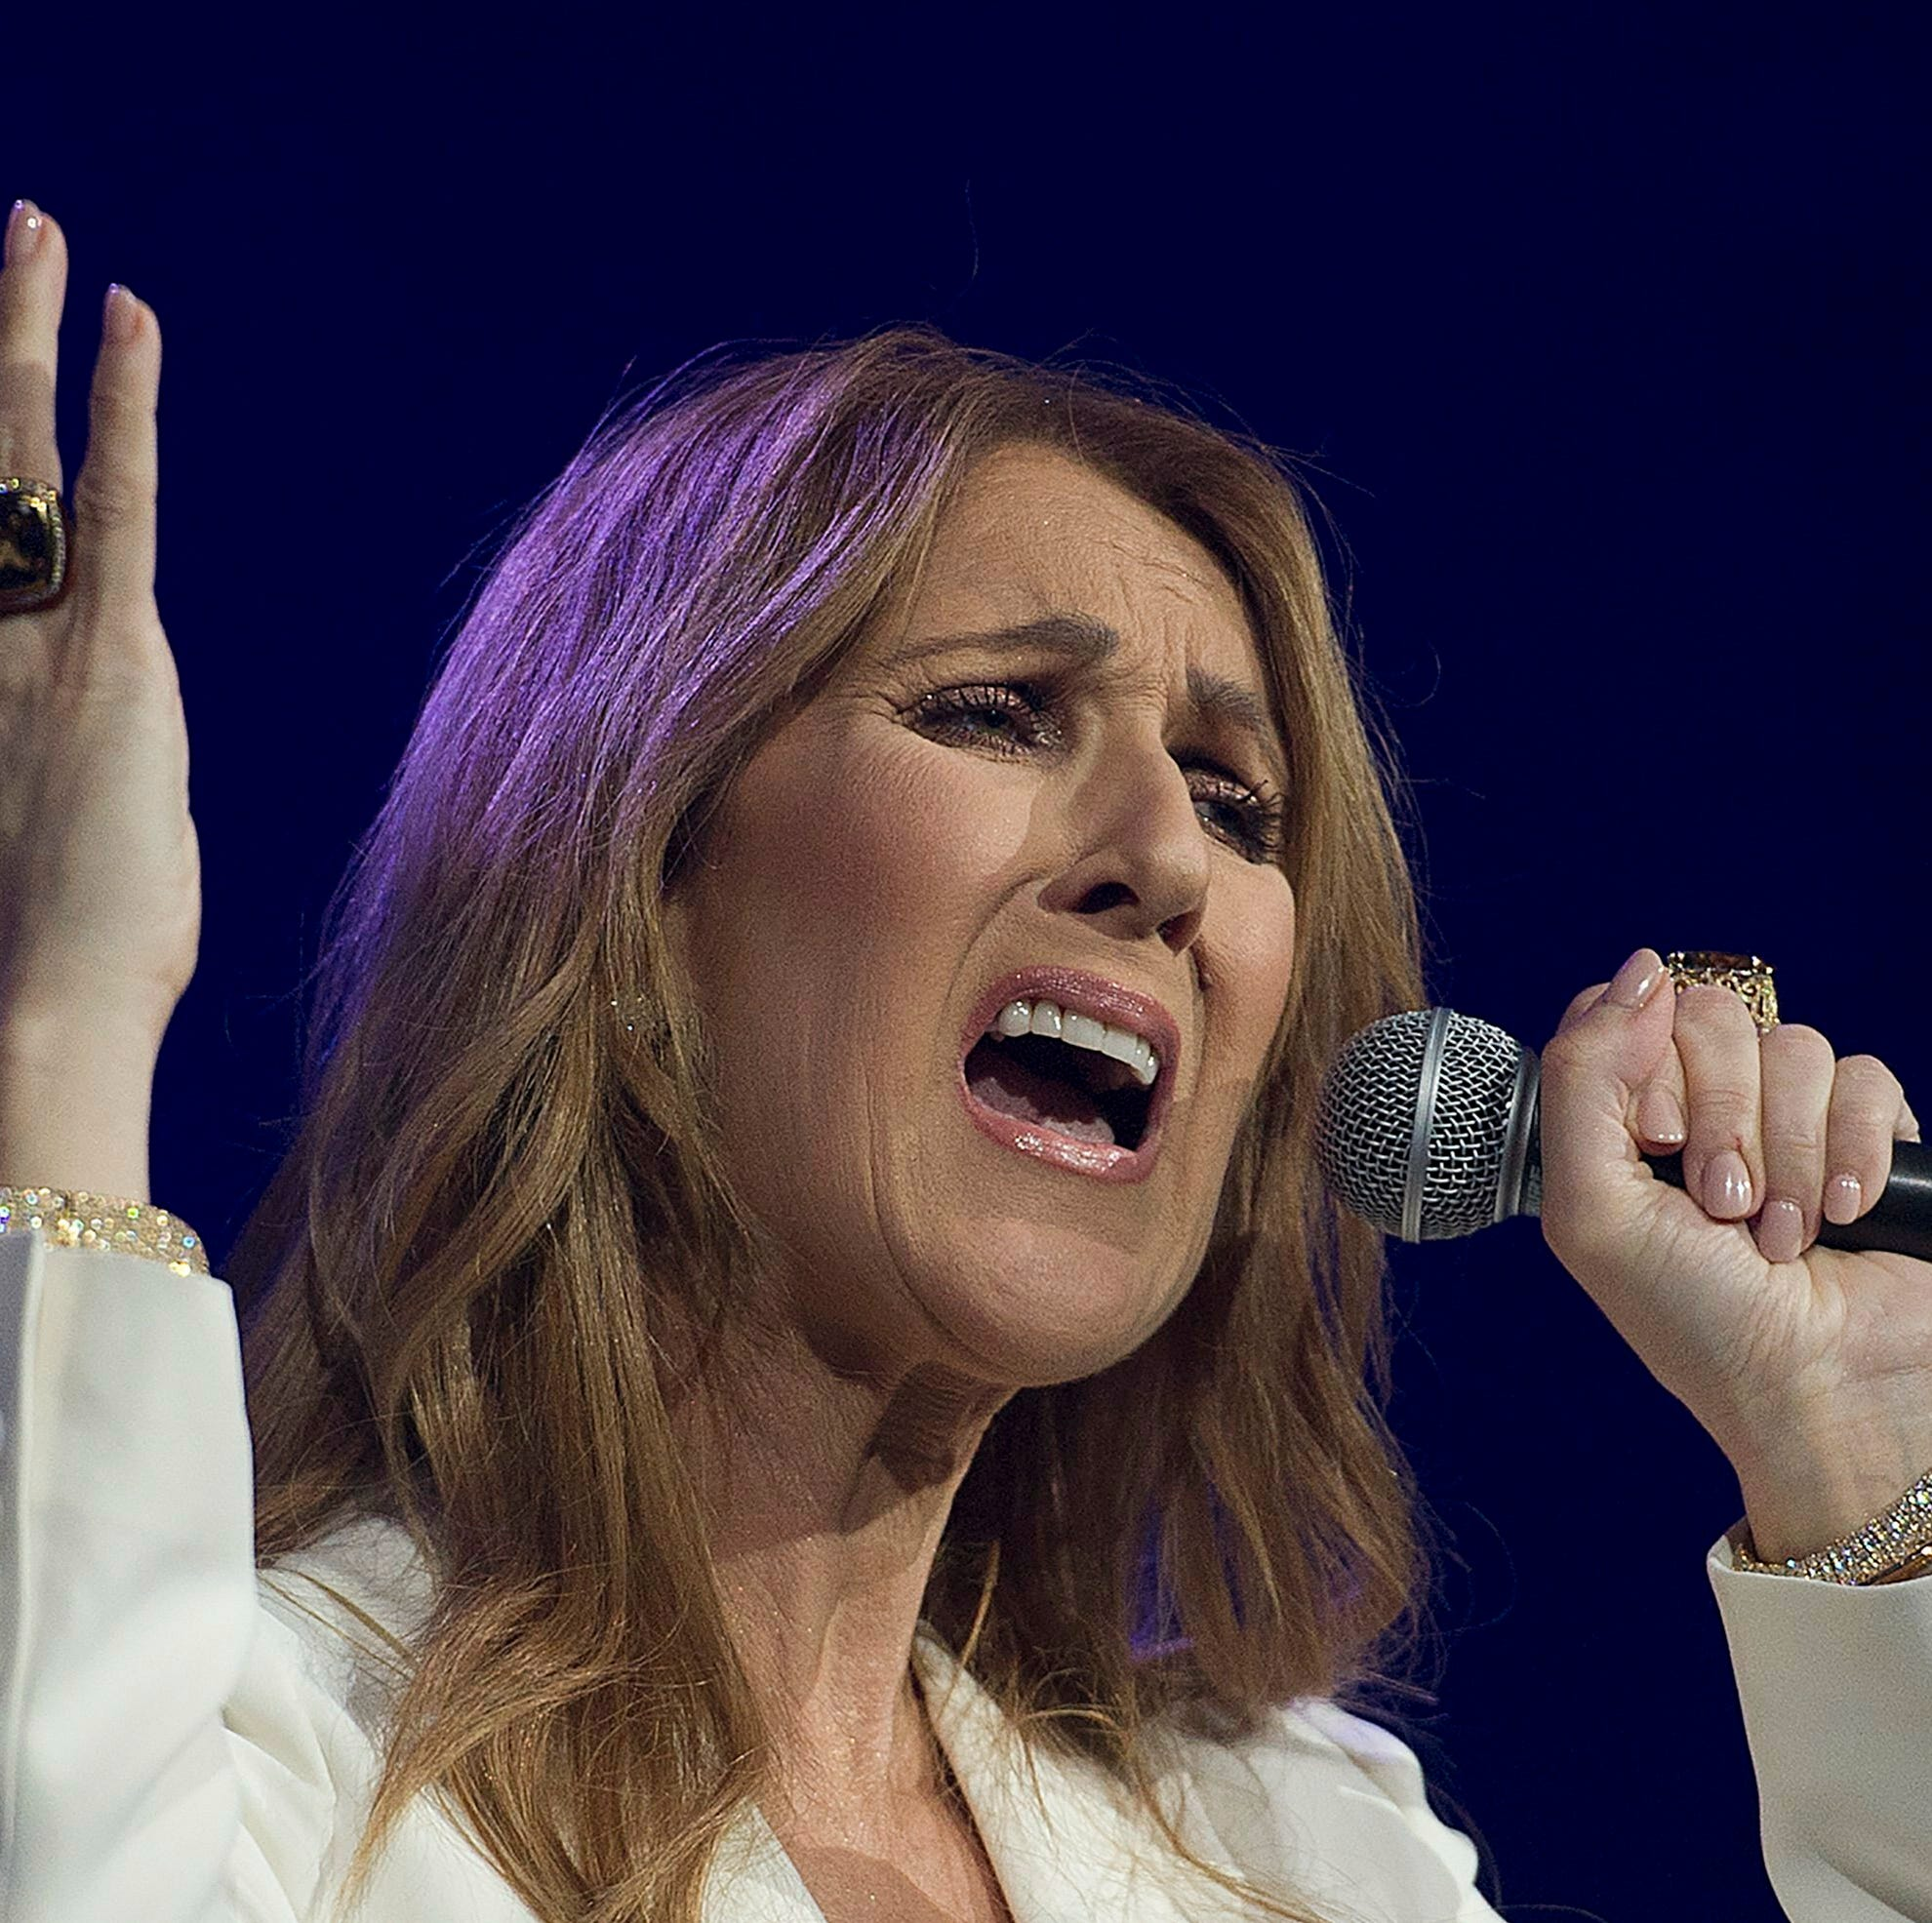 Celine Dion coming to FedExForum in 2020